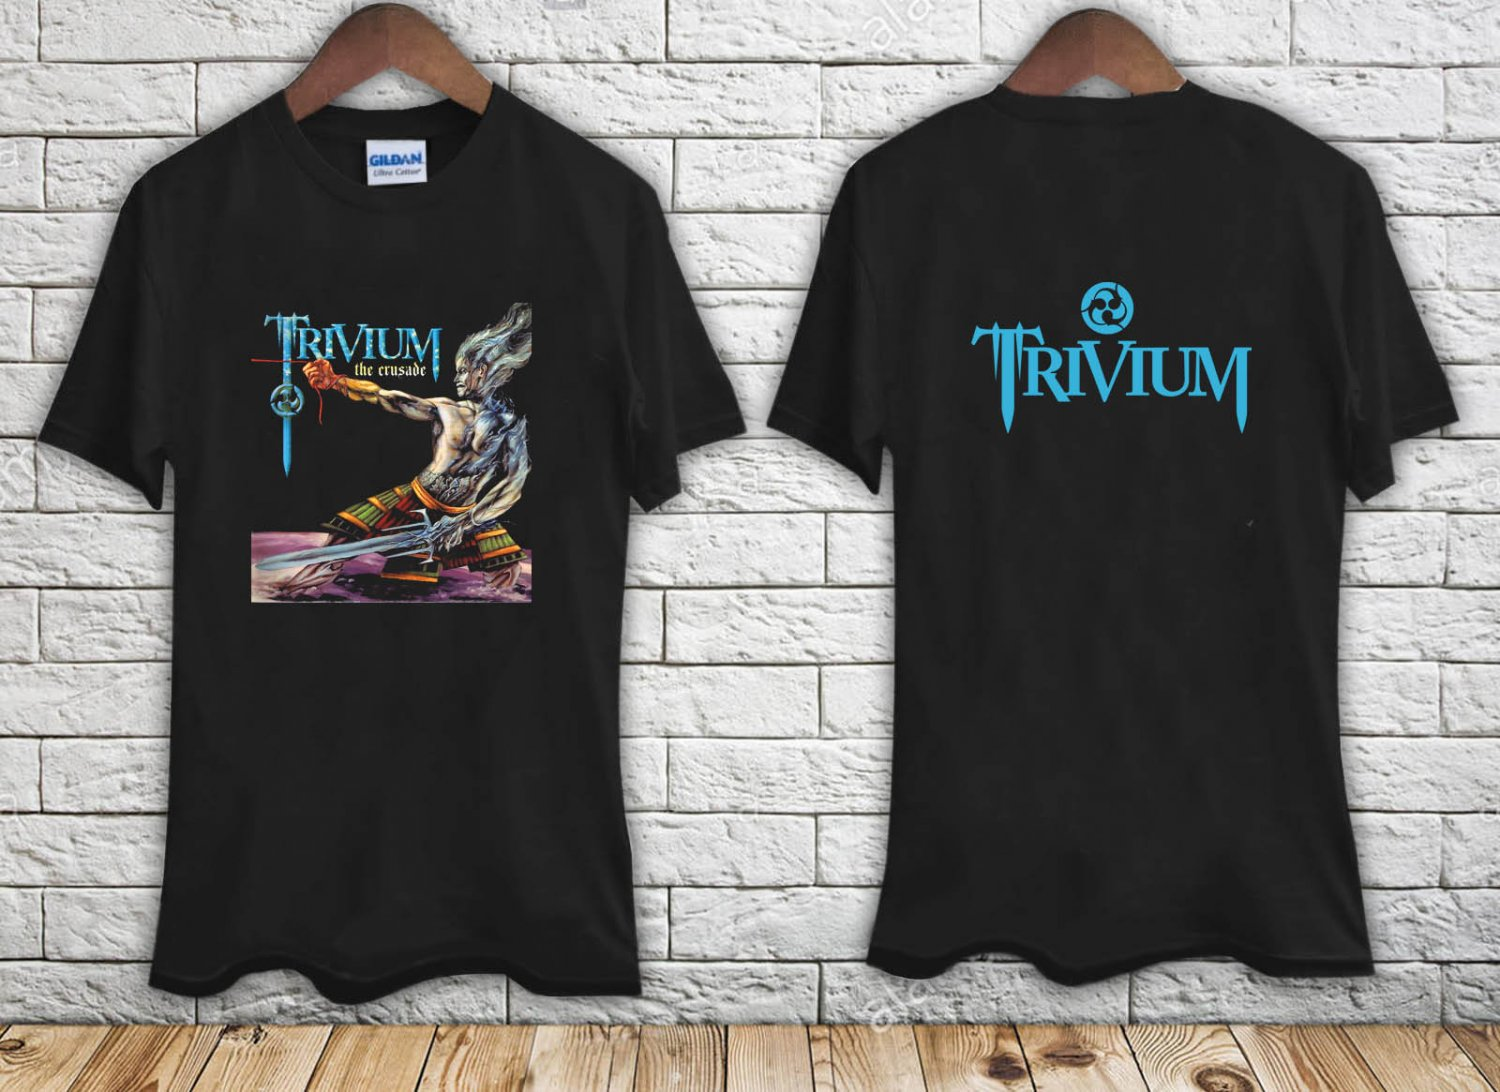 Trivium The Crusade Tour 2007 black t-shirt tshirt shirts tee SIZE 2XL